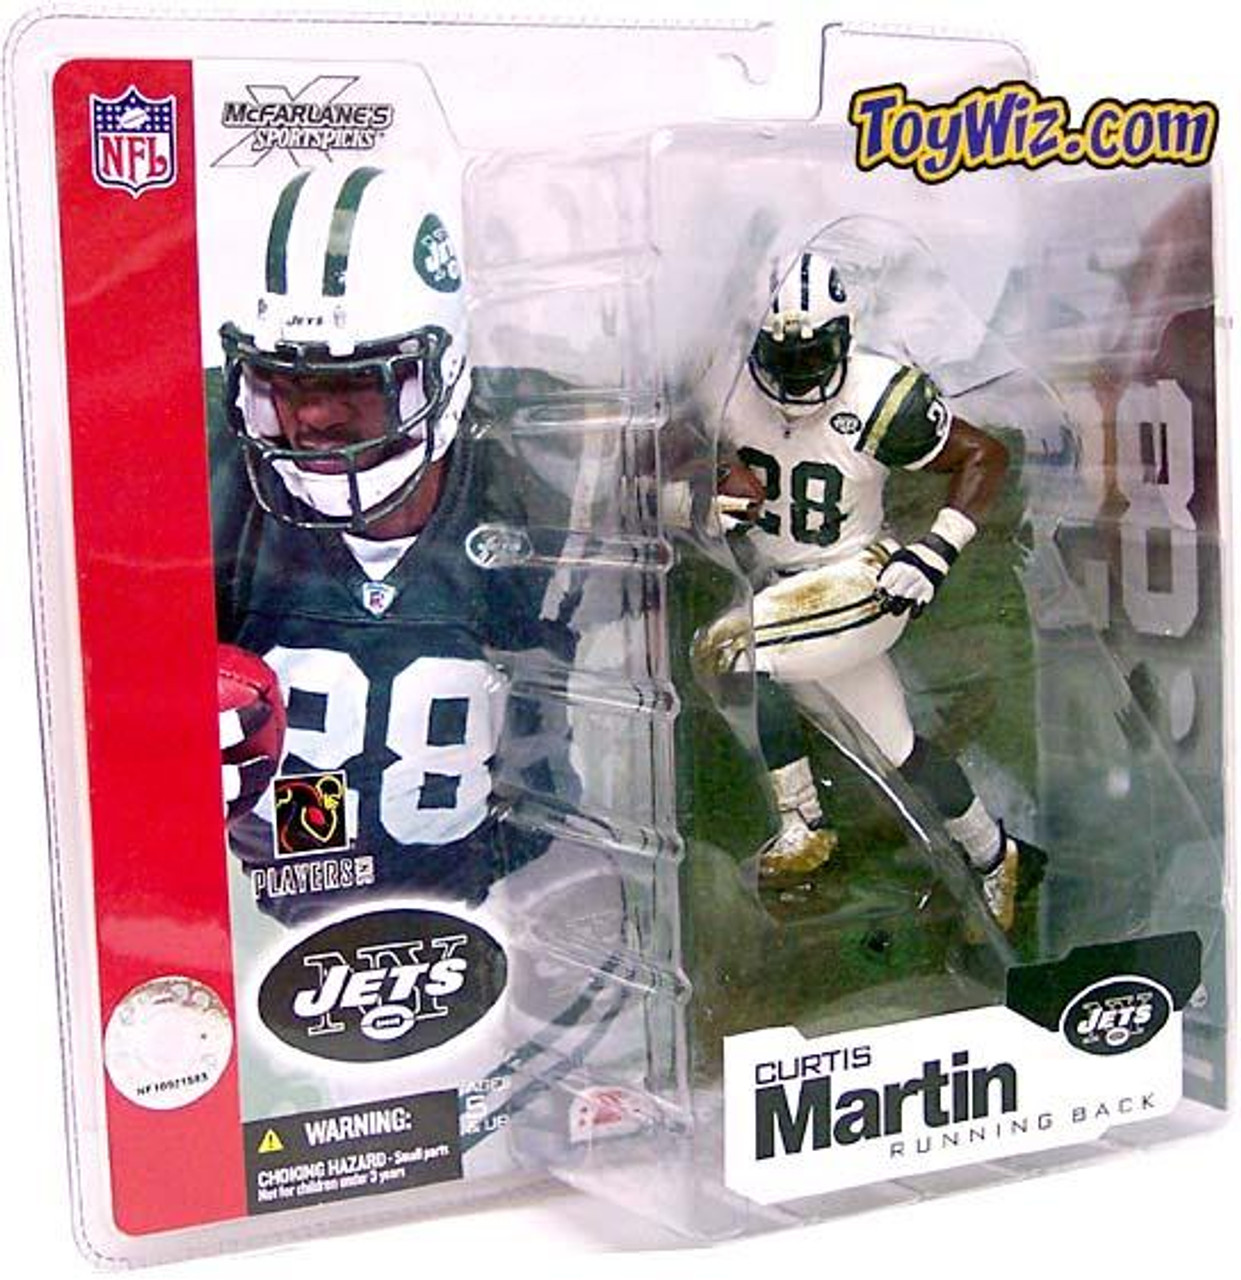 McFarlane Toys NFL New York Jets Sports Picks Series 4 Curtis Martin Action Figure [White Jersey Variant]